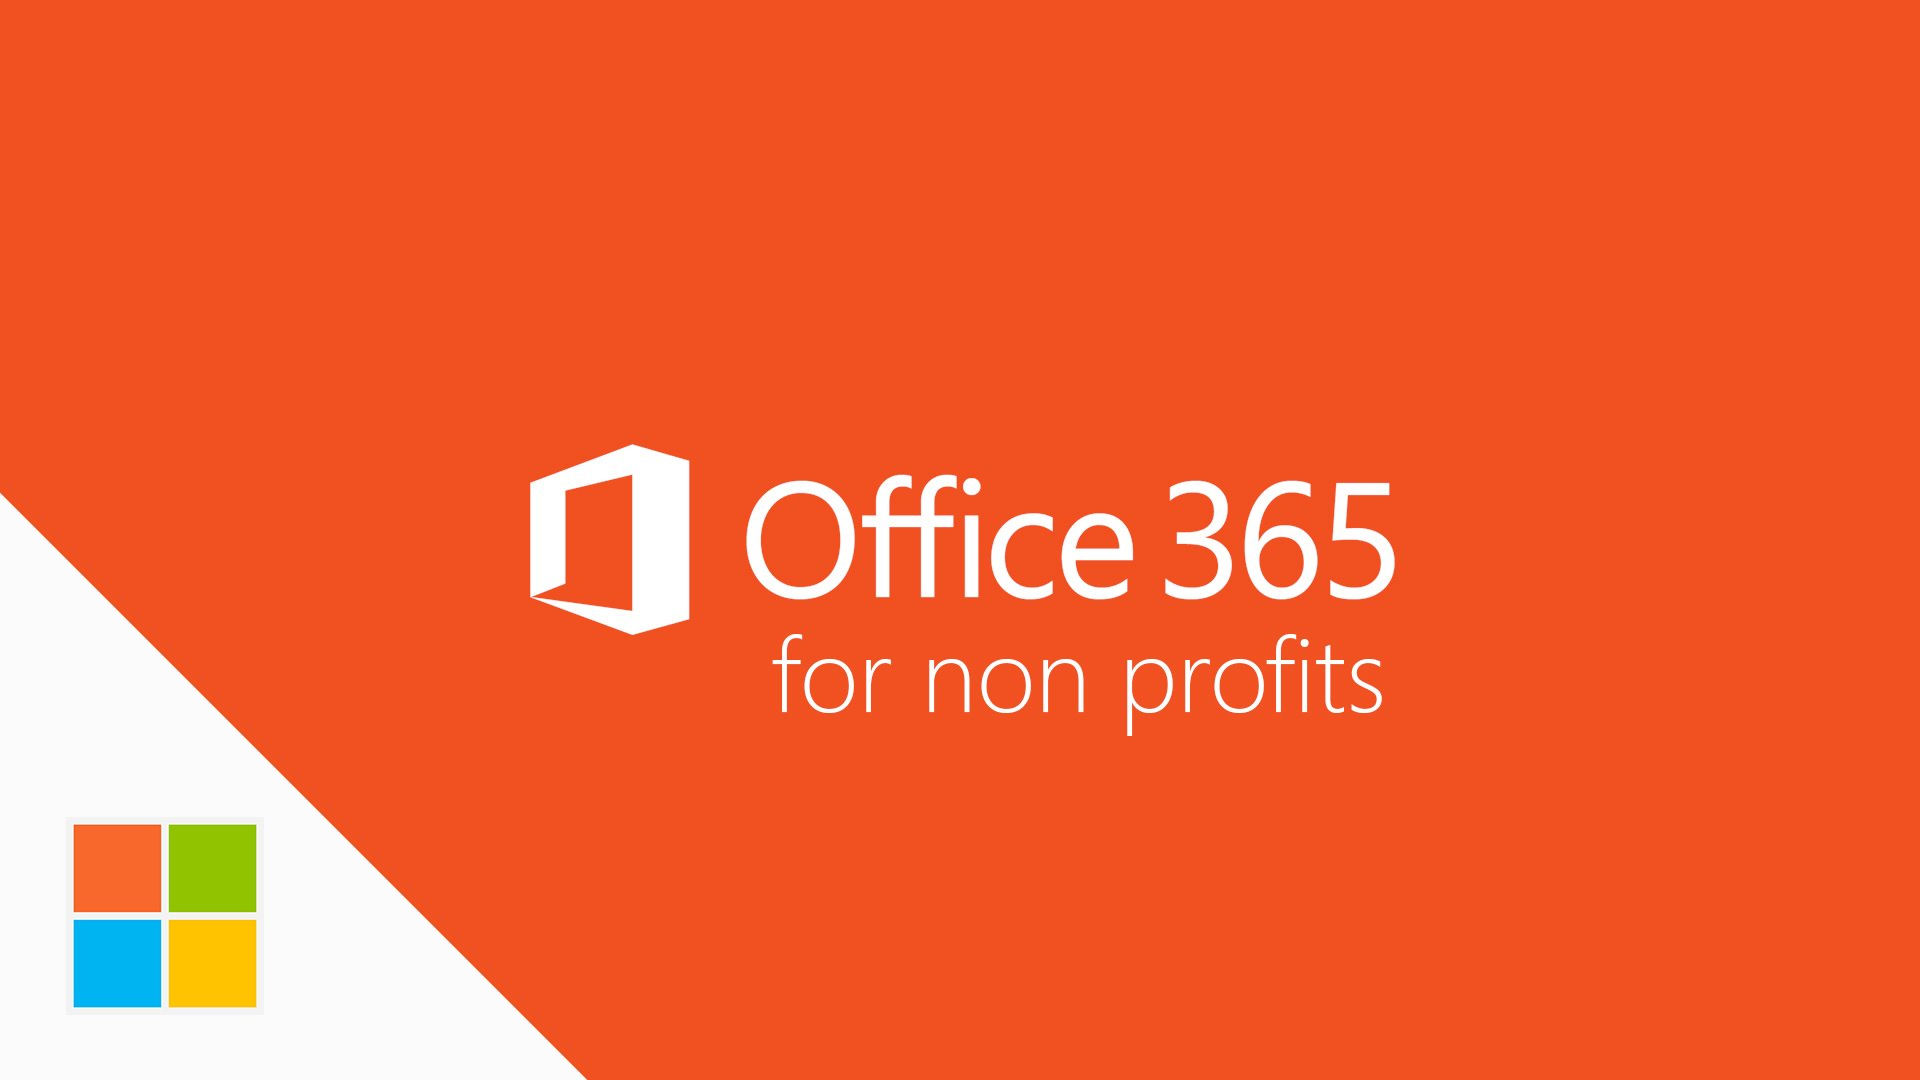 Microsoft Office 365 Nonprofit plans and pricing